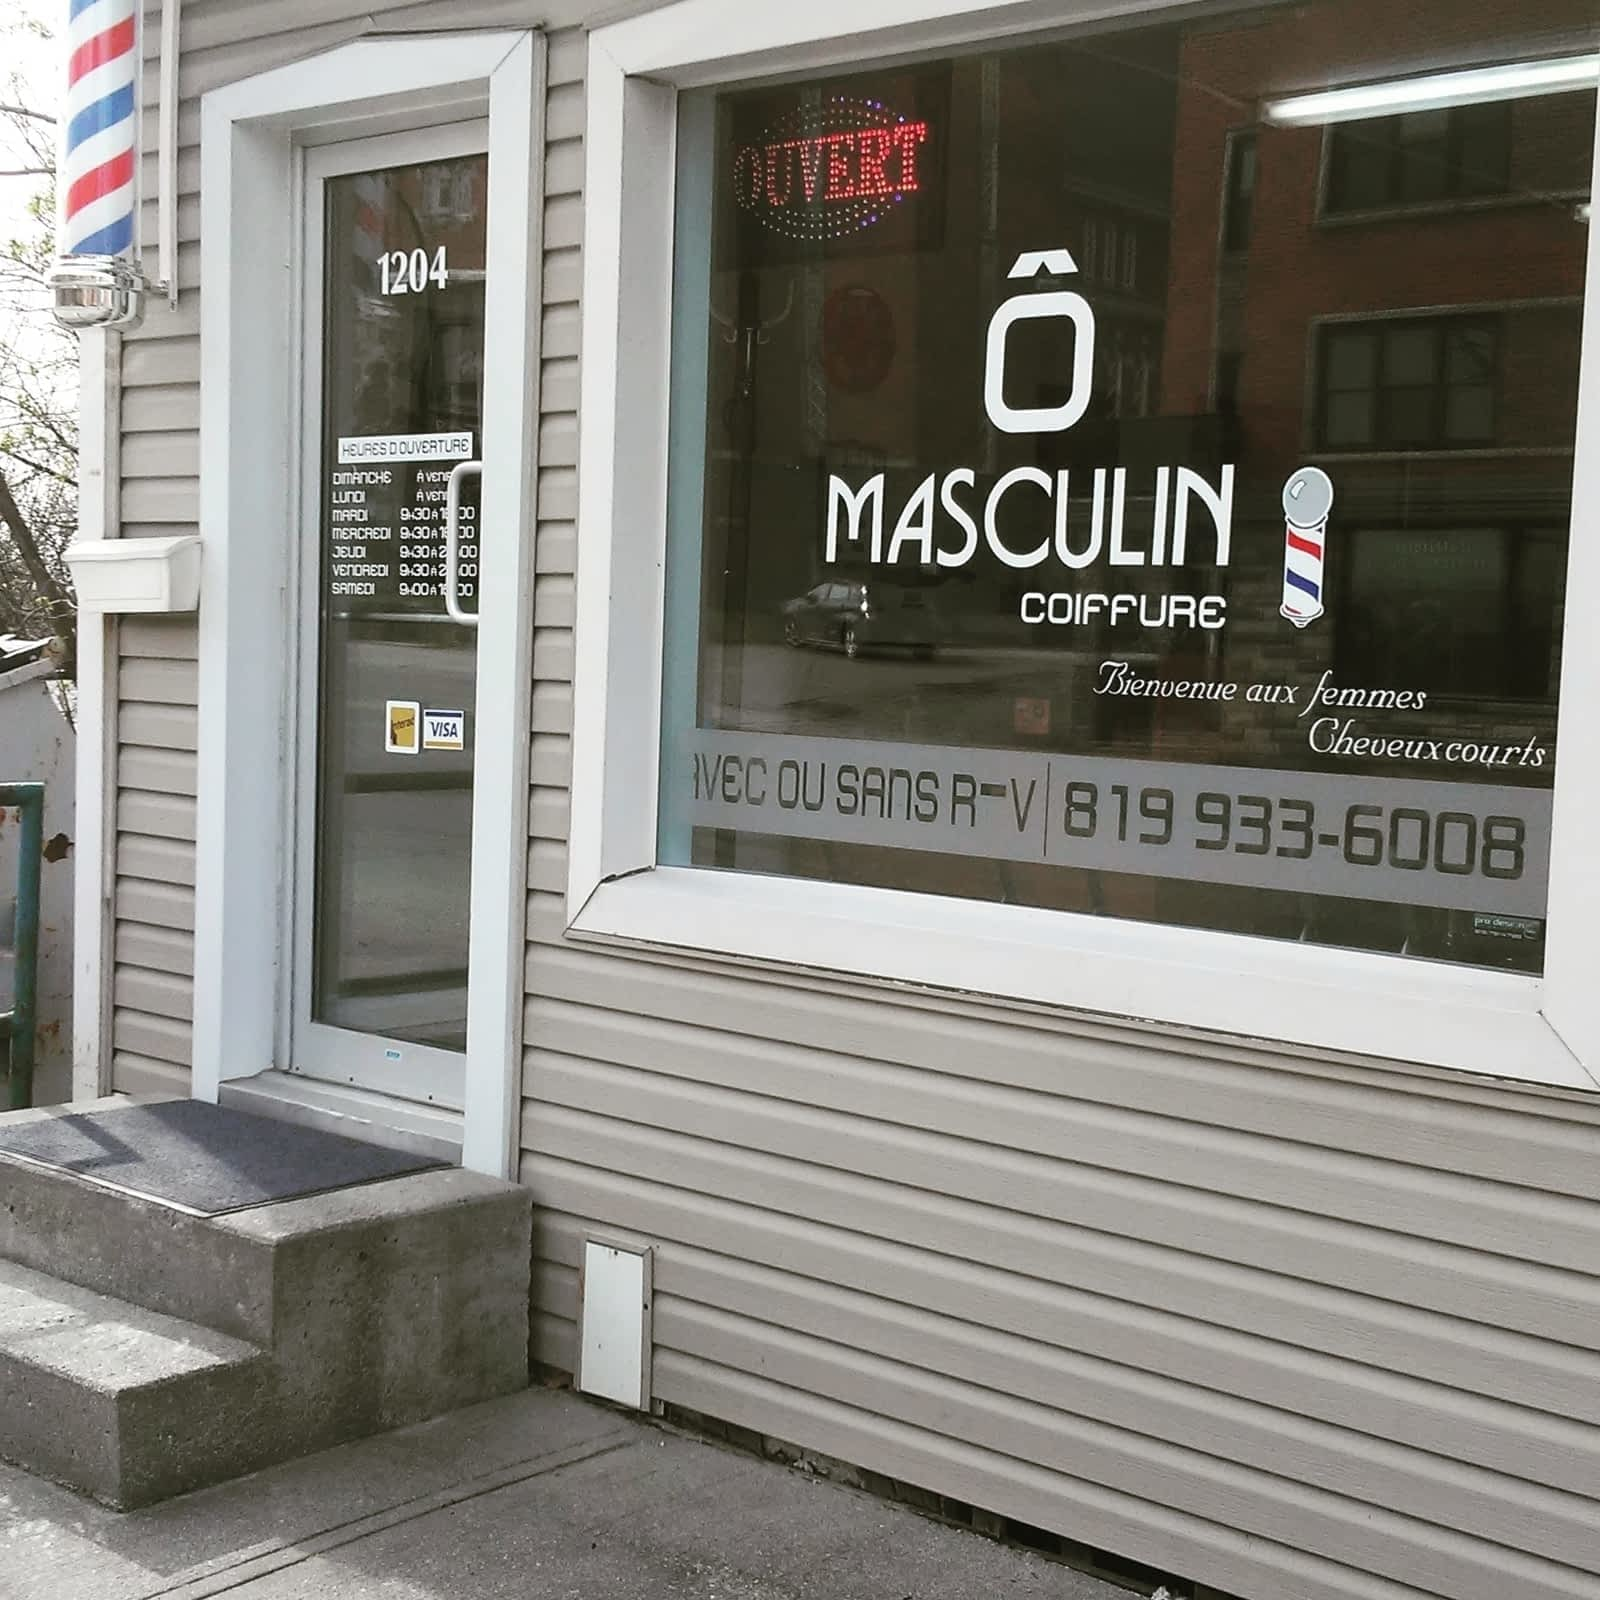 Coiffure Pour Homme O Masculin Opening Hours 1204 Rue